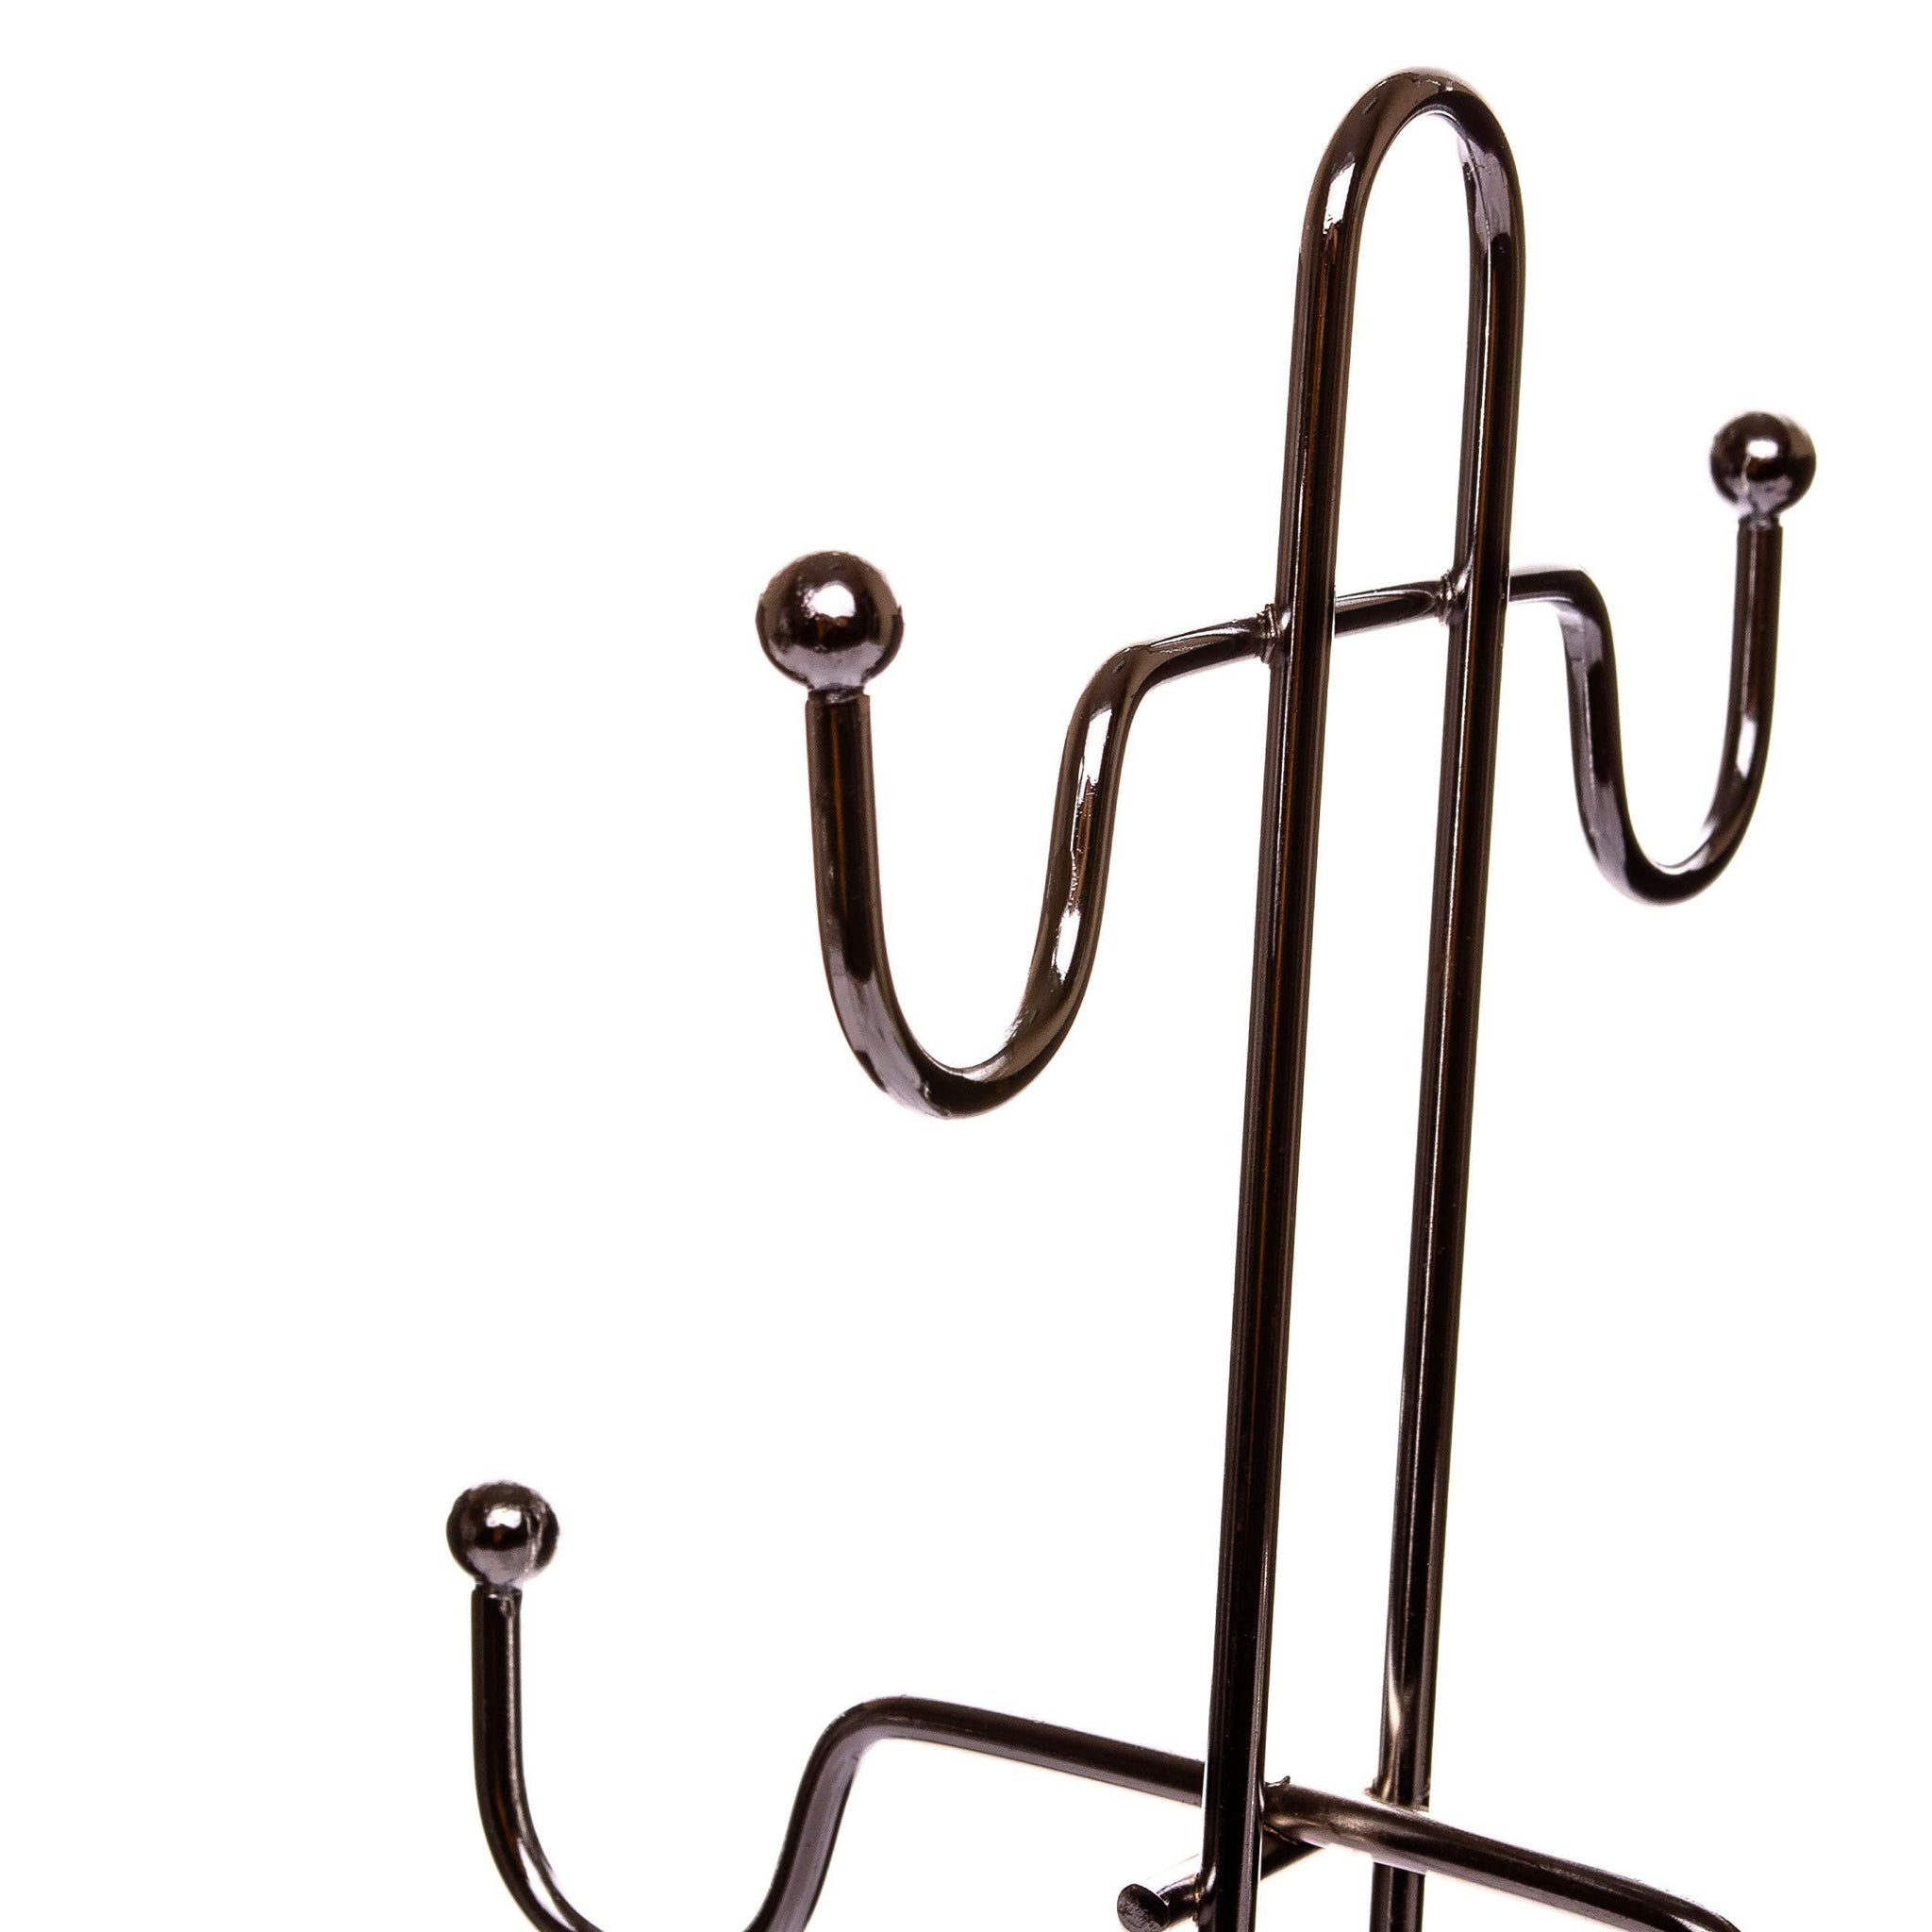 OFXDD Coffee Mug Rack Stand, Restaurant Mug Rack, Mug Display Rack, Espresso Mug Rack